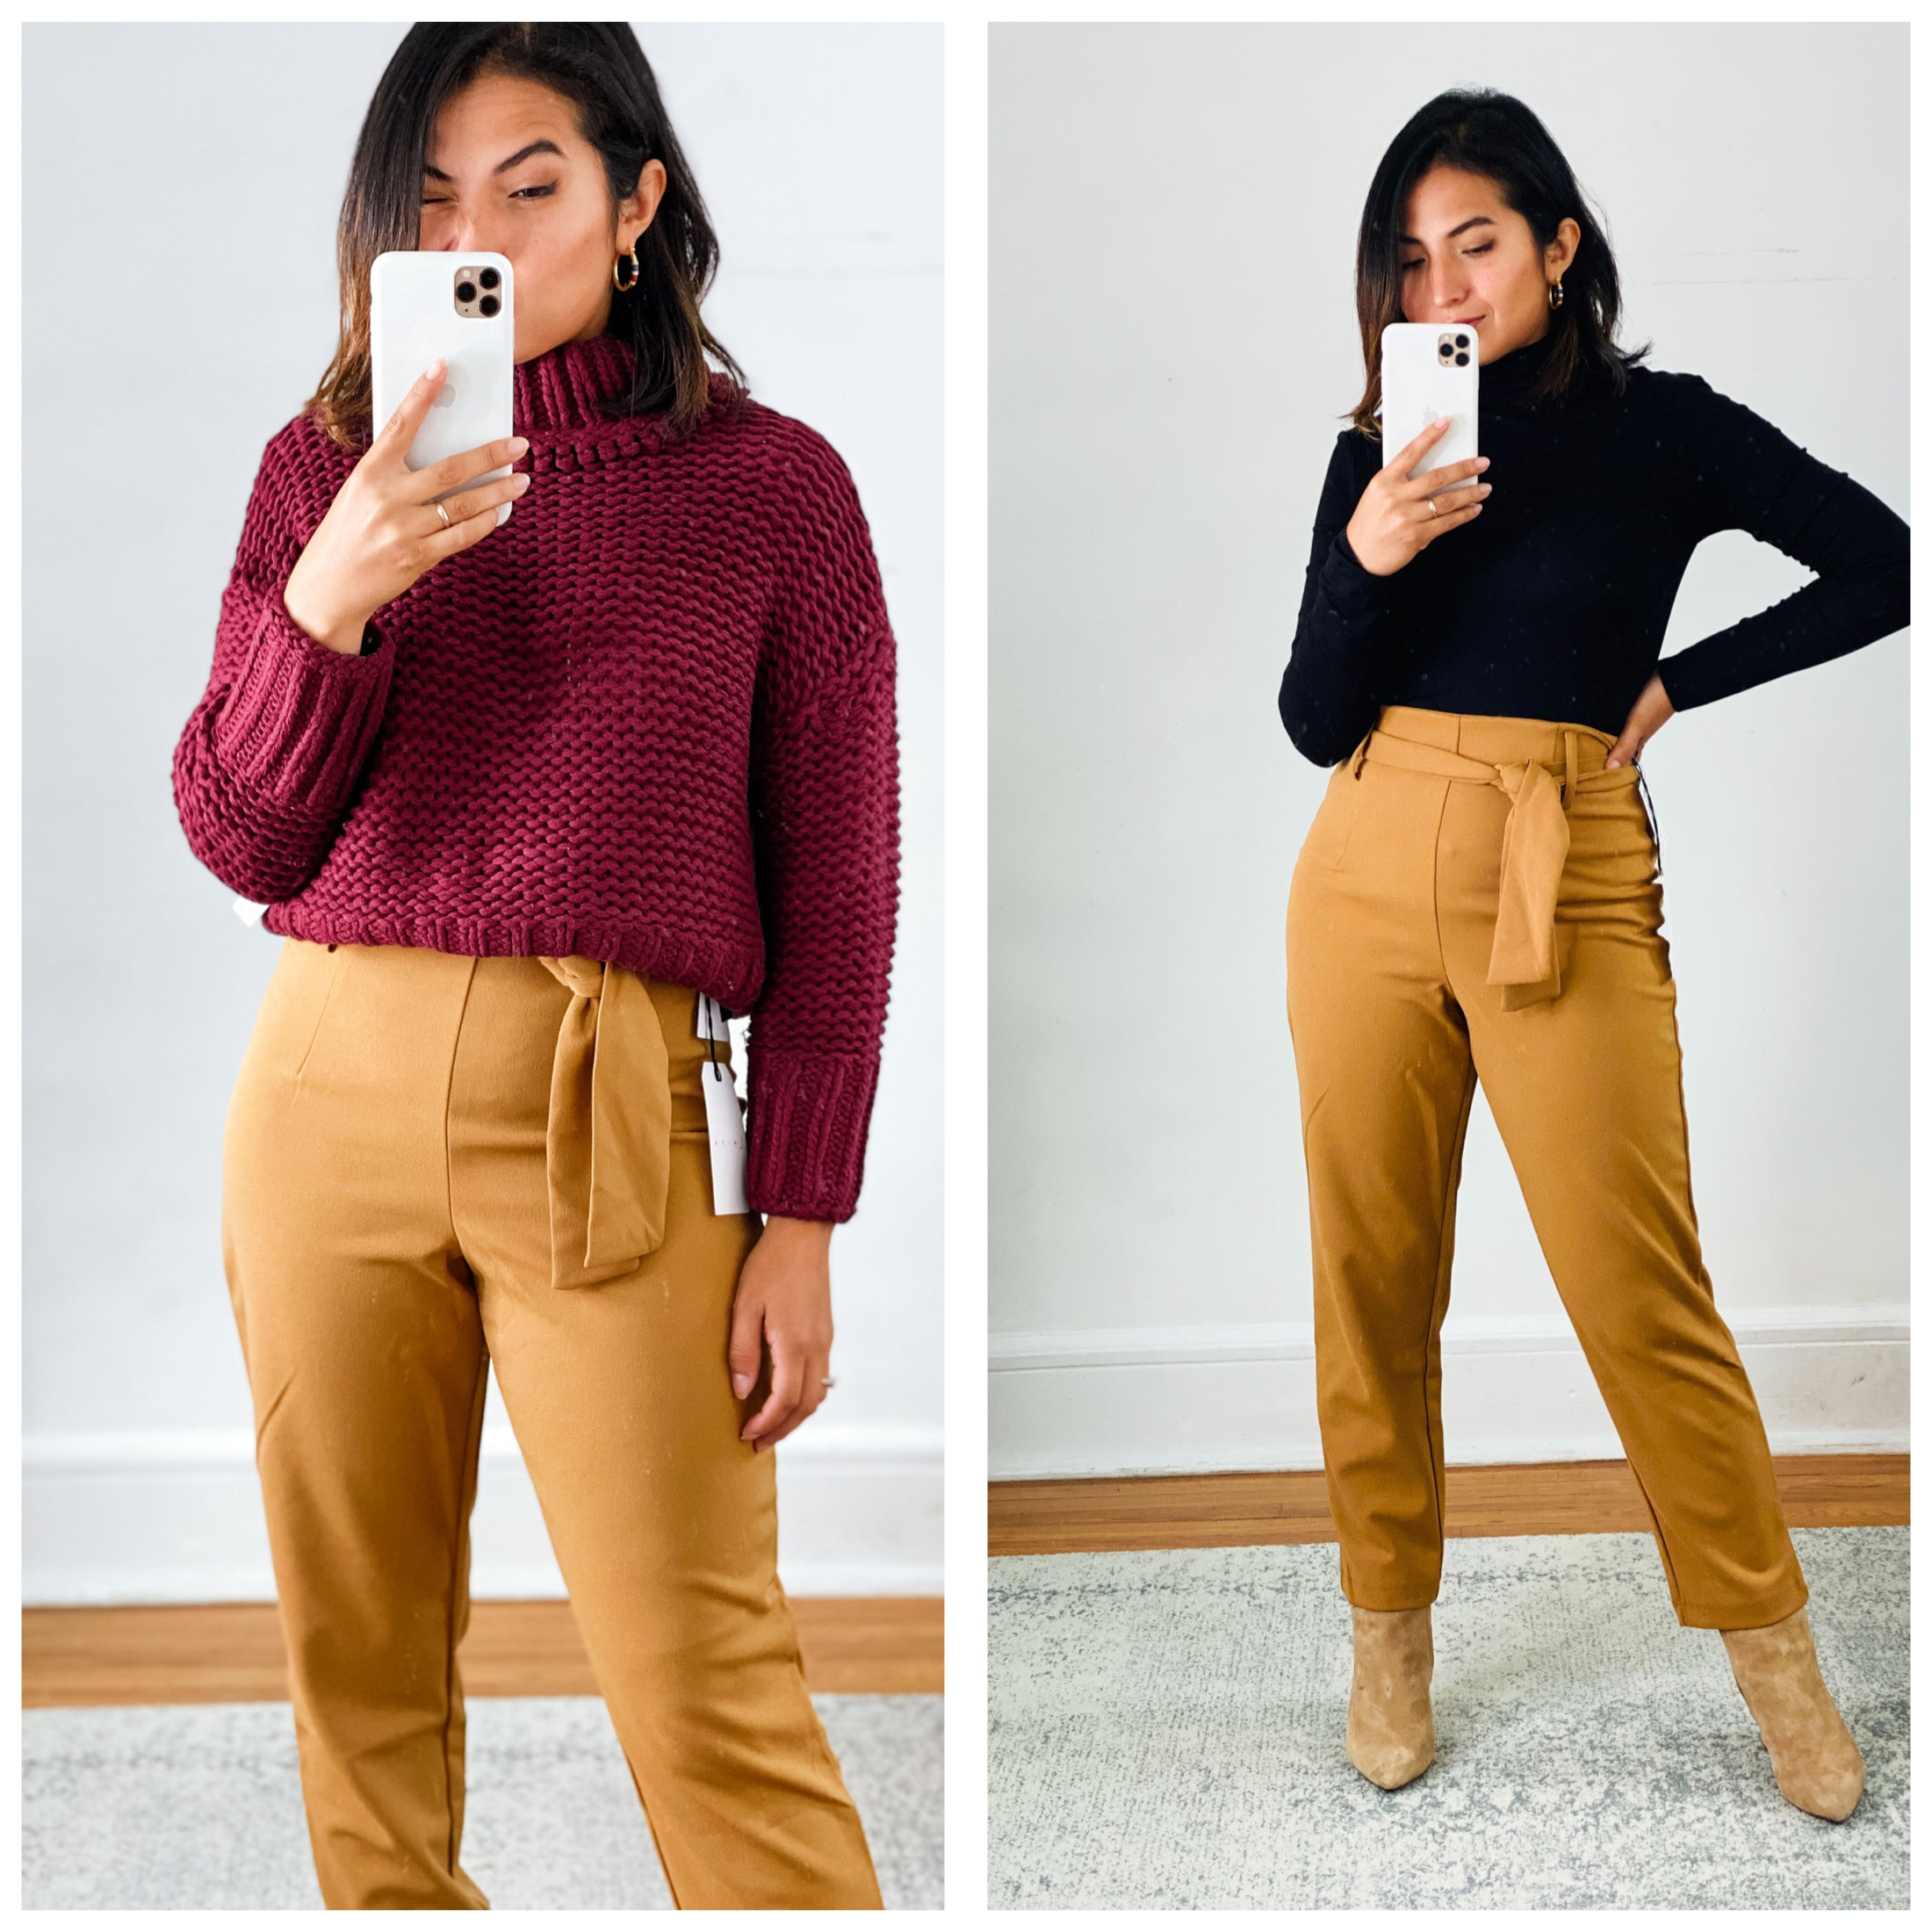 Shop the Nordstrom Anniversary Sale for chic clothes to wear at home. Julieta's formula — from jeans to sweaters & a knit midi dress is perfect.